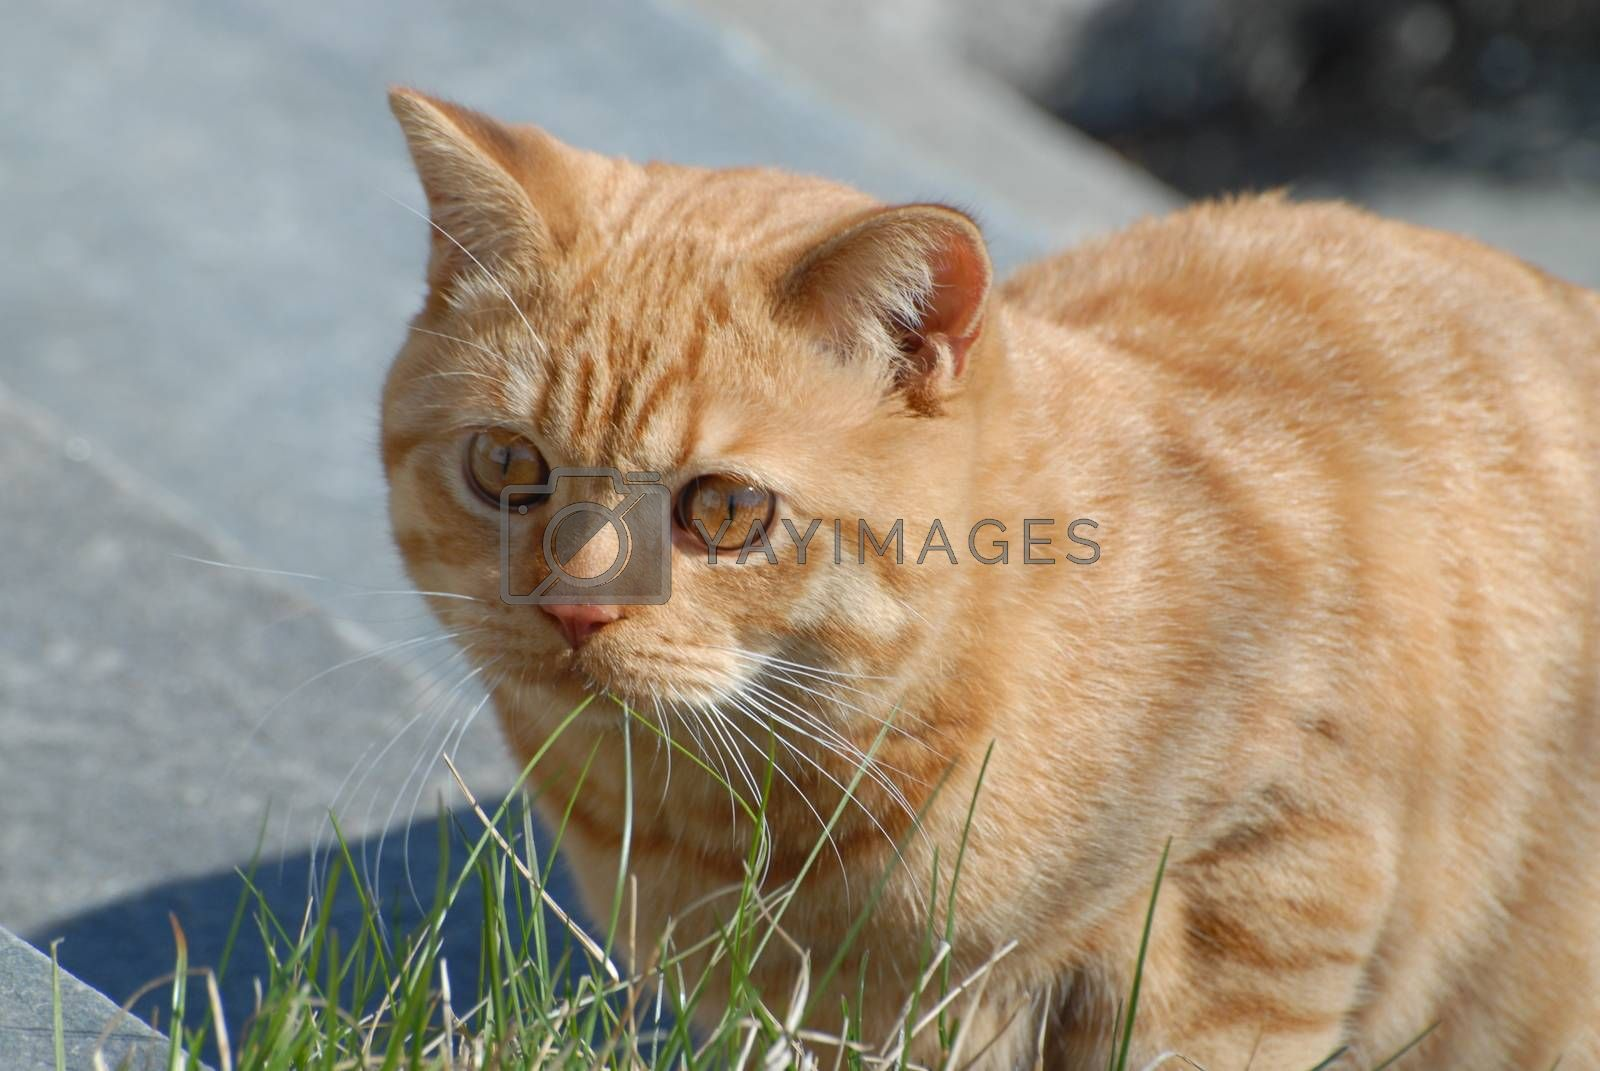 British shorthair cat by Bildehagen